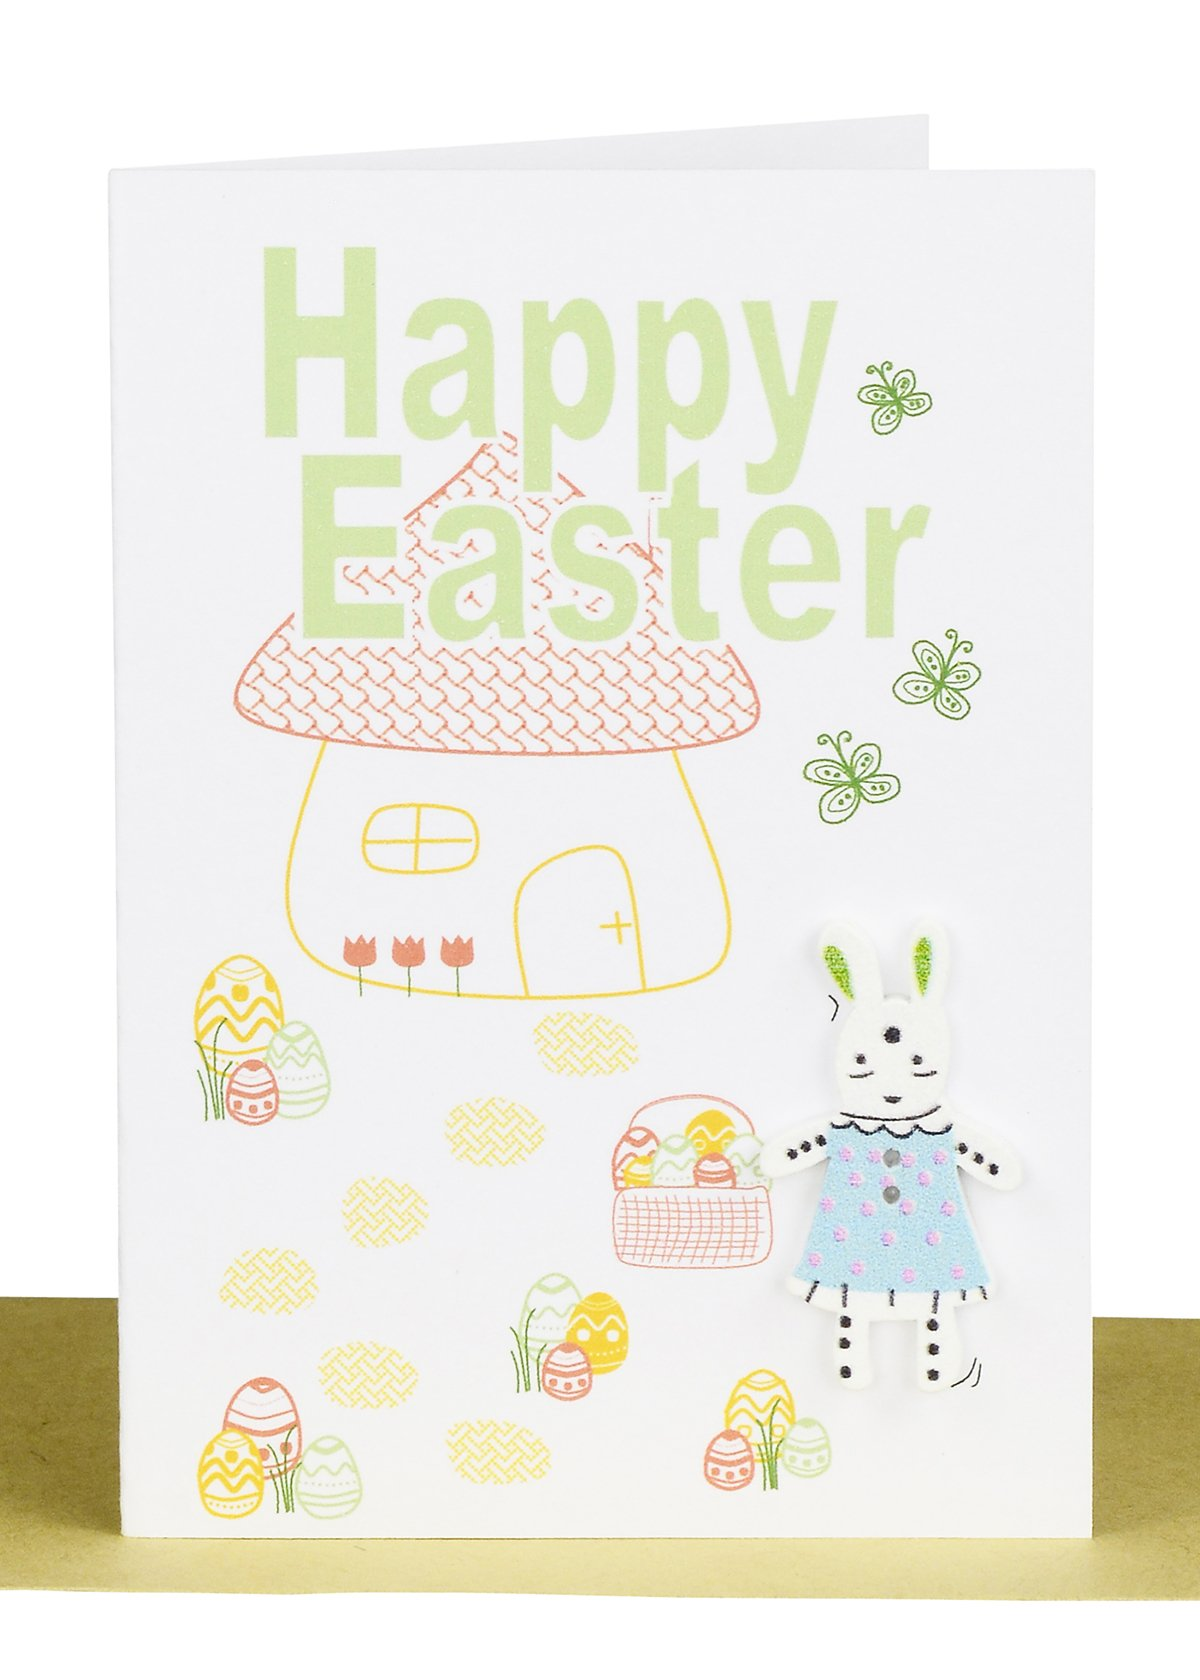 Happy easter gift card lils handmade cards sydney wholesale happy easter greeting card negle Images